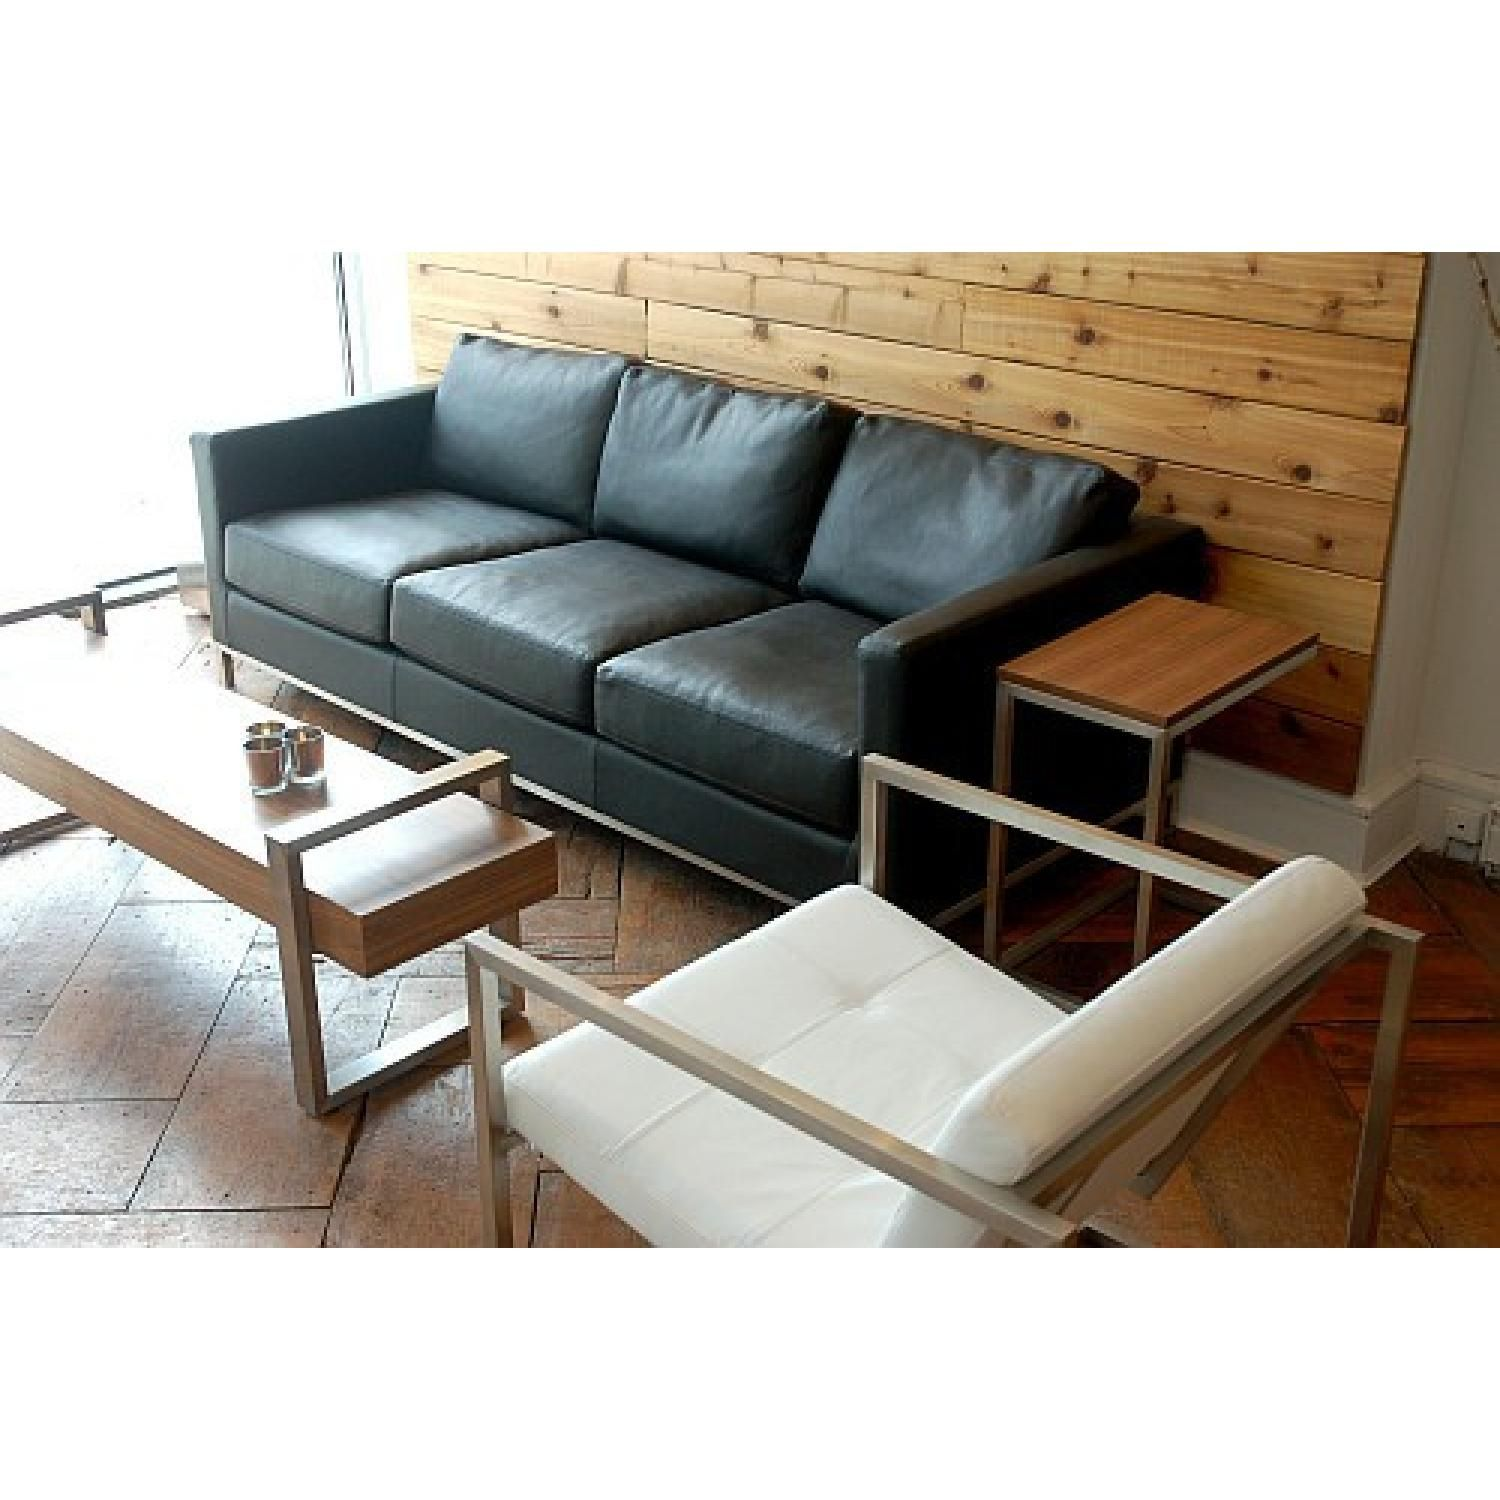 Gus Modern Our Atwood Sofa in an apartment in Taiwan